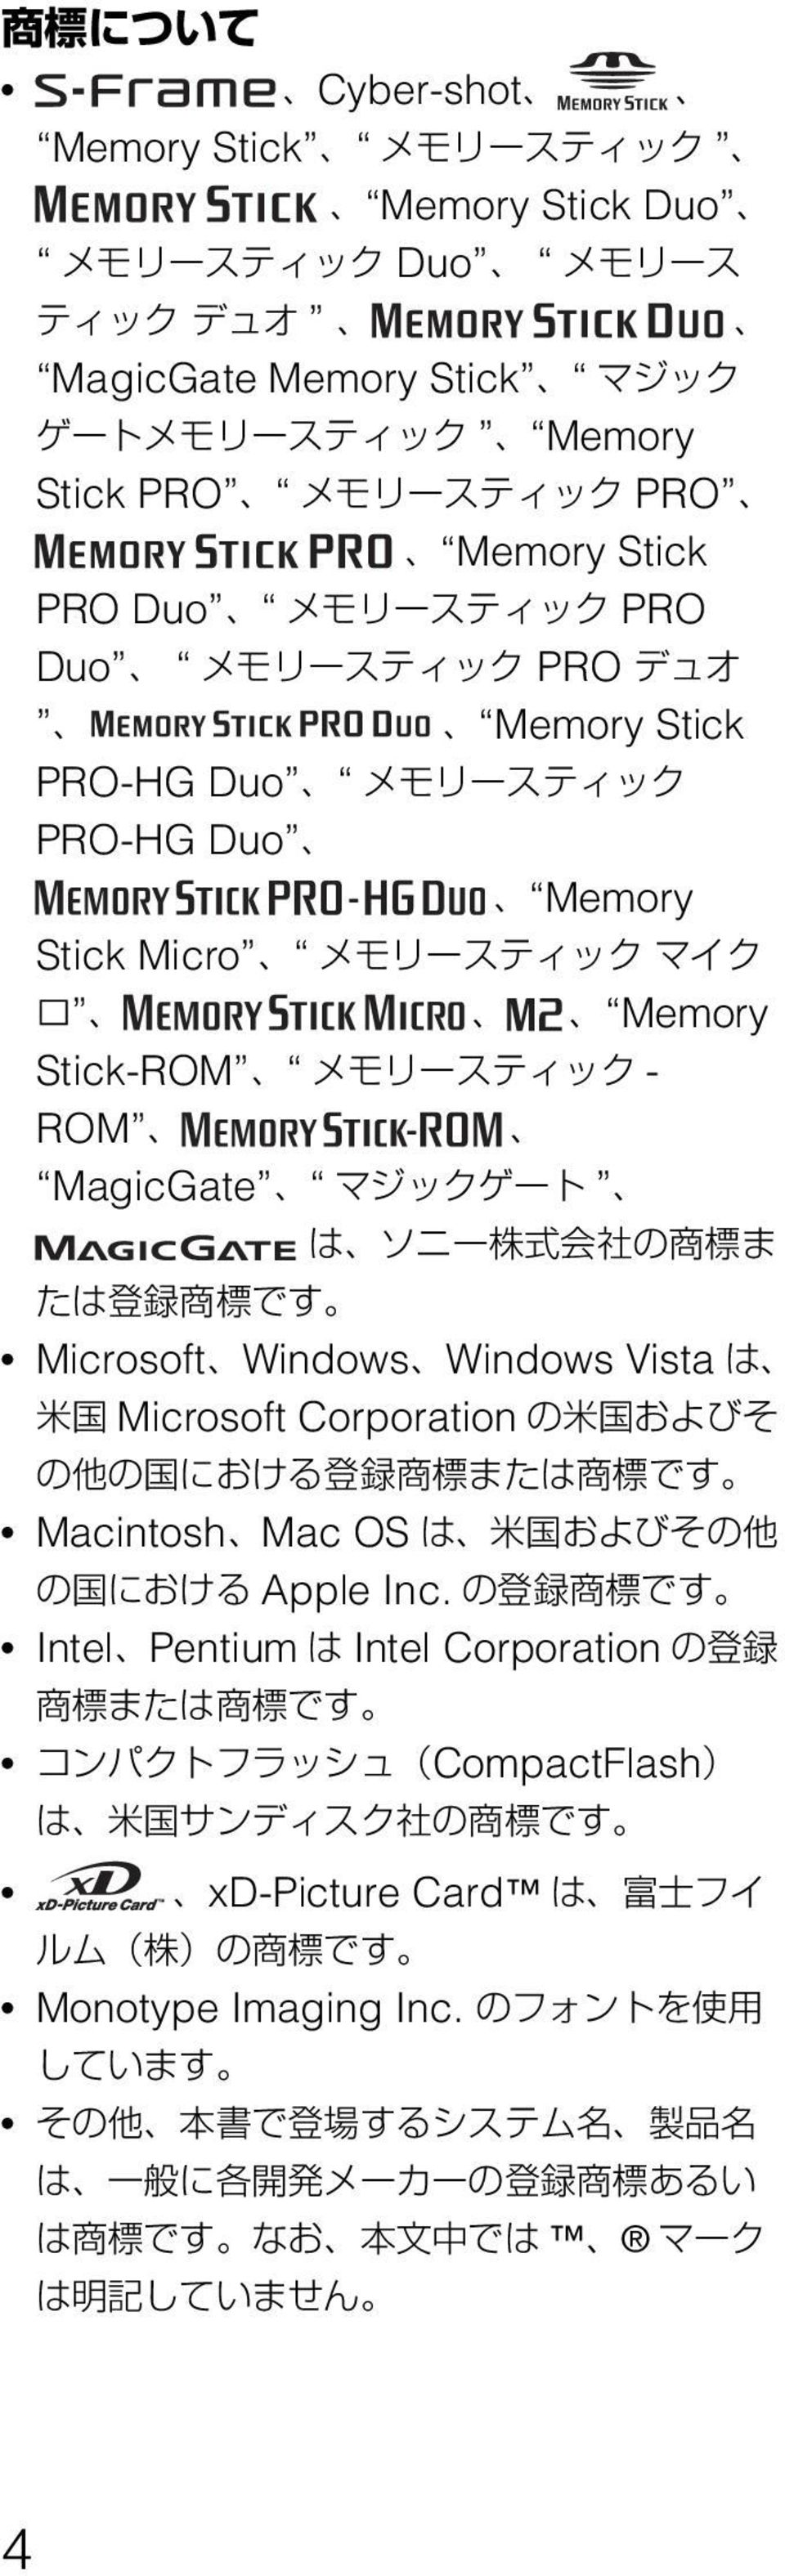 Stick-ROM - ROM MagicGate Microsoft Windows Windows Vista Microsoft Corporation Macintosh Mac